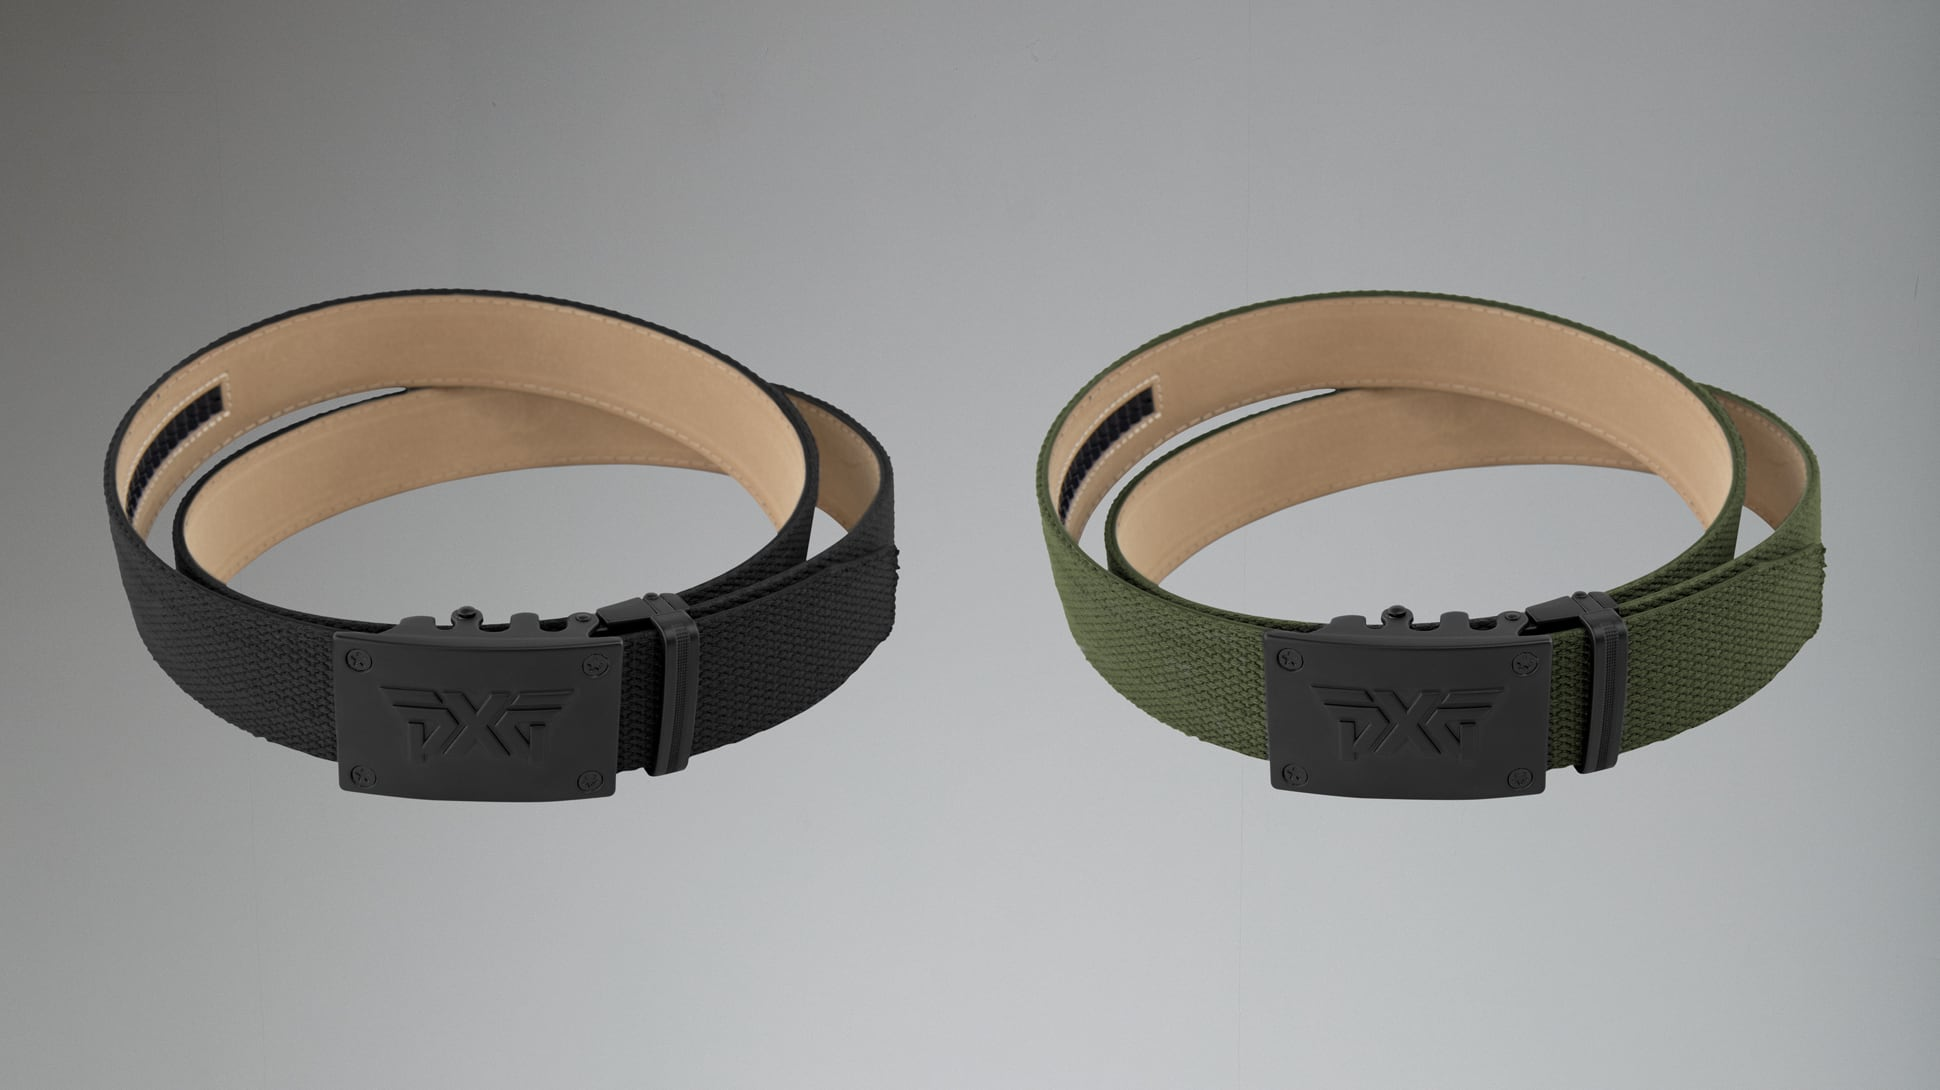 Ratchet Belt - Black/OD Green Image 1